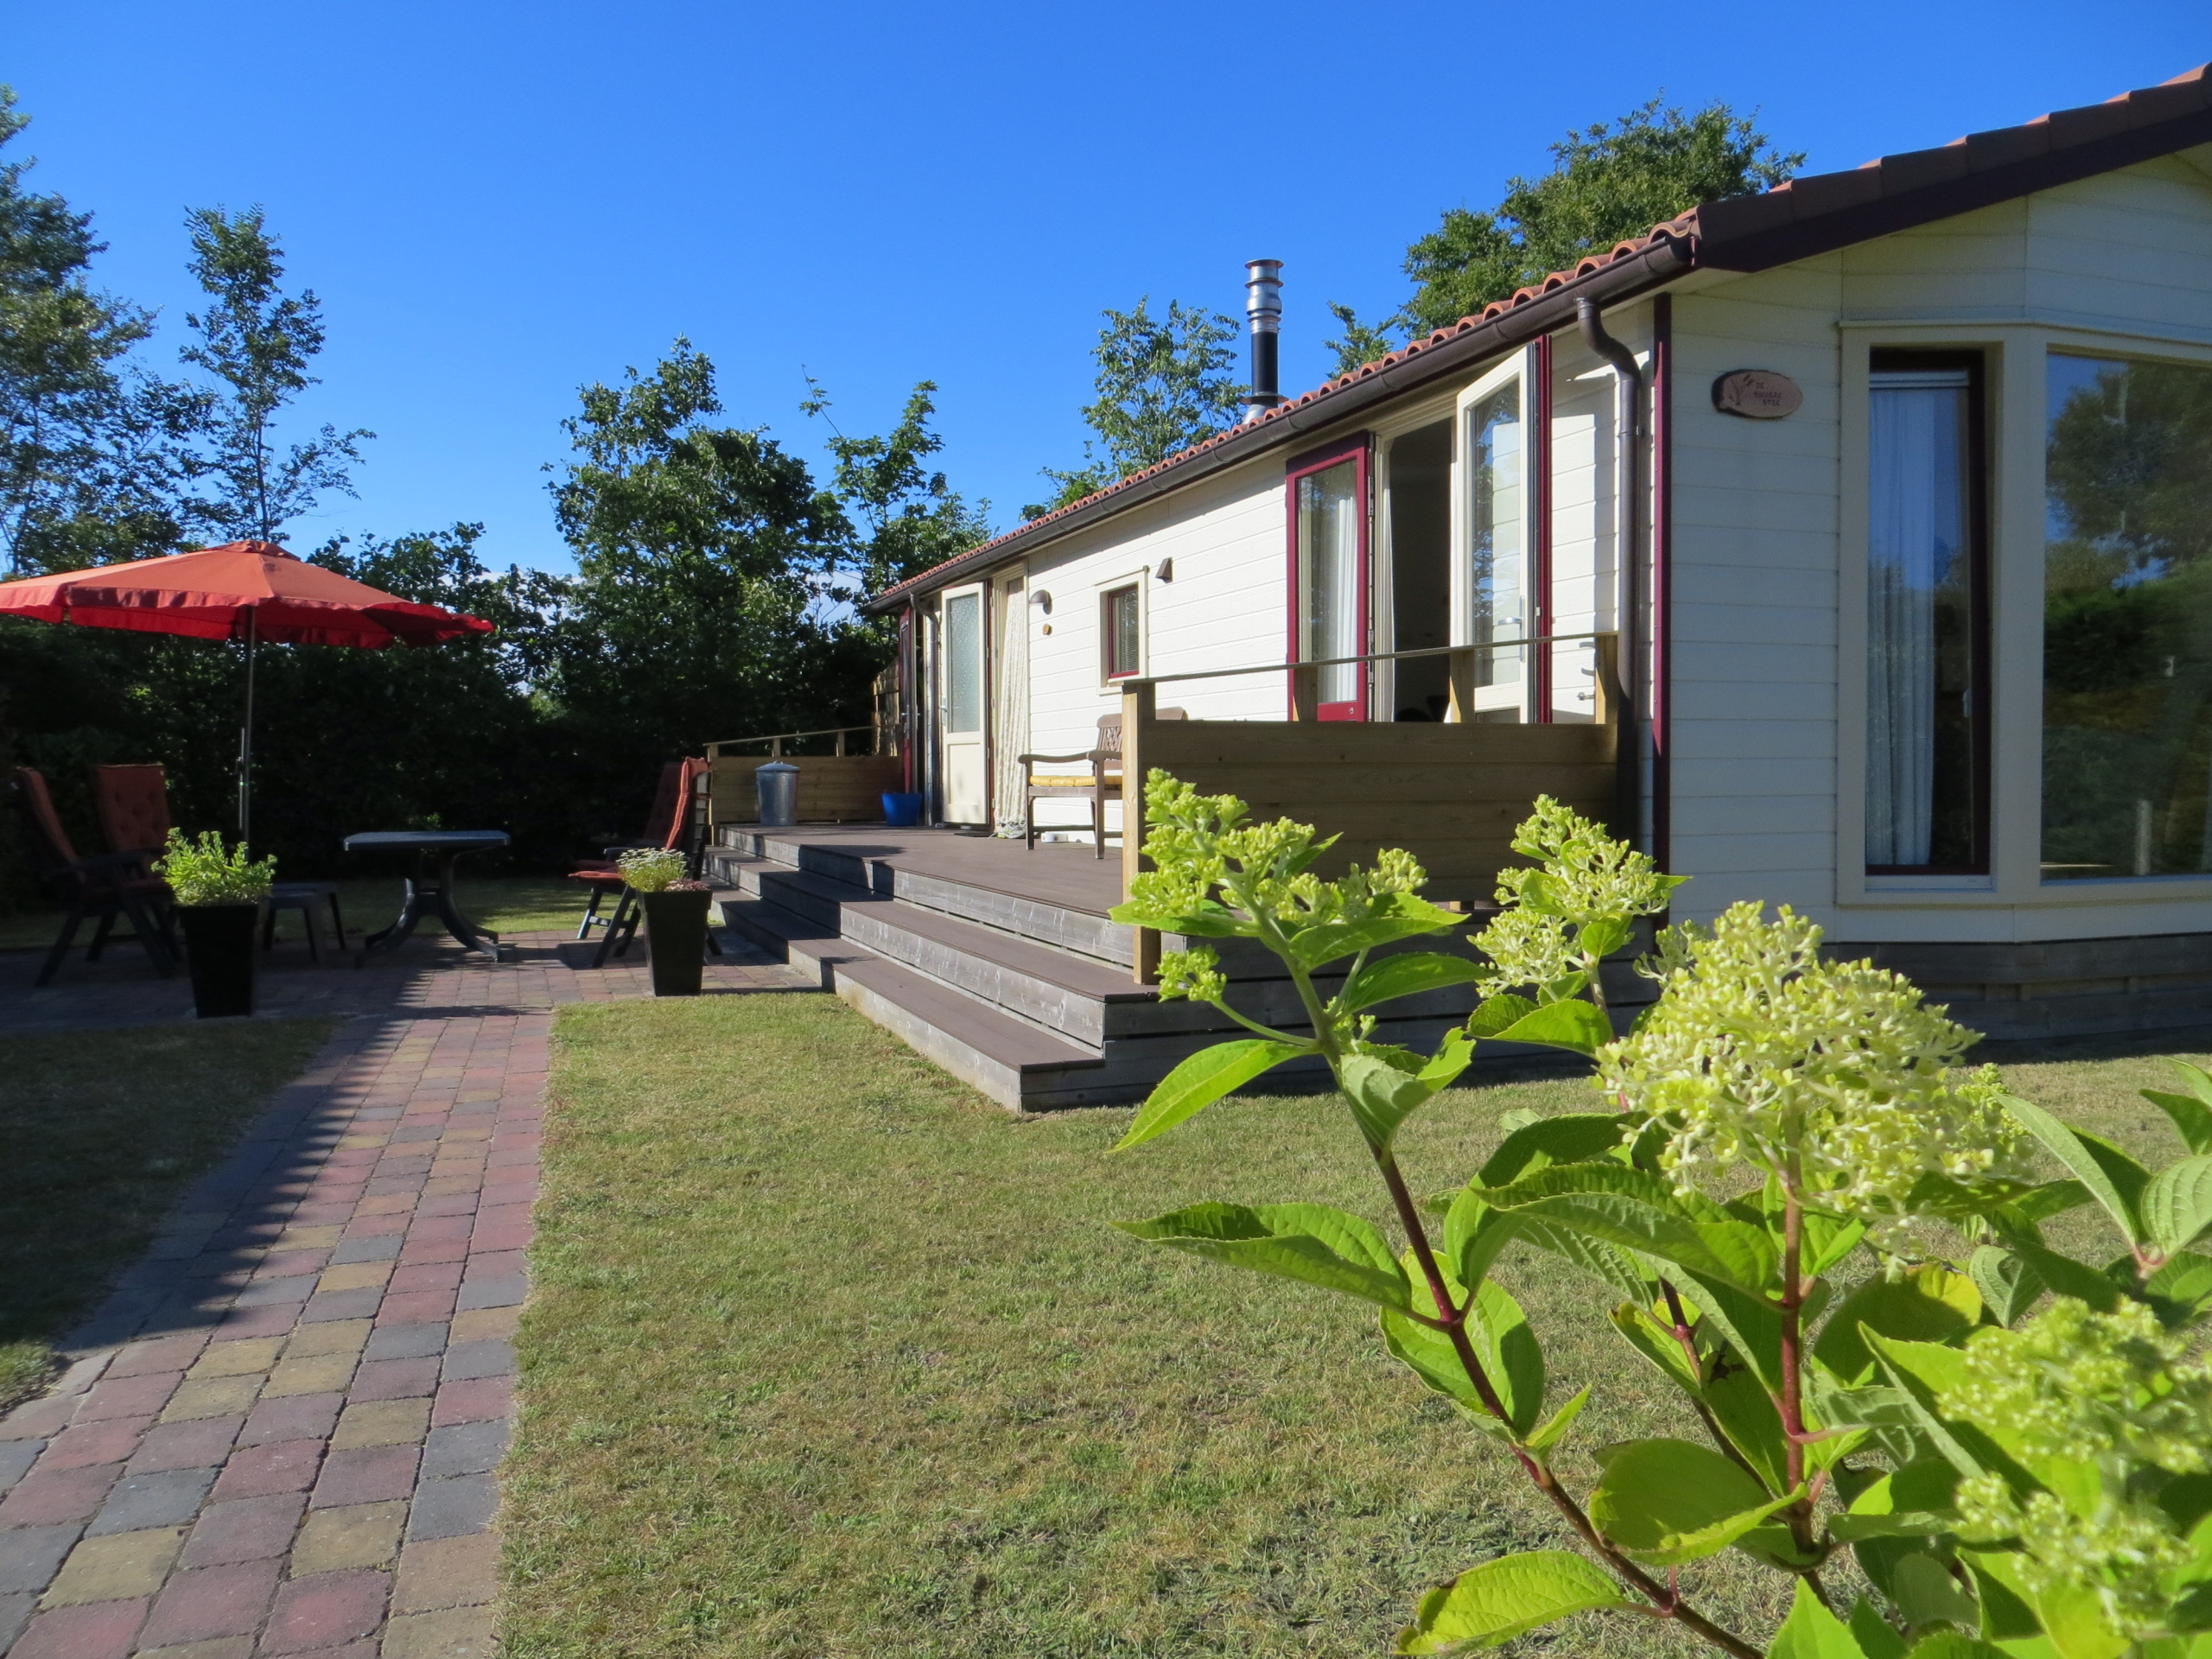 Completely furnished chalet with spacious enclosed garden and quiet location in forest De Dennen